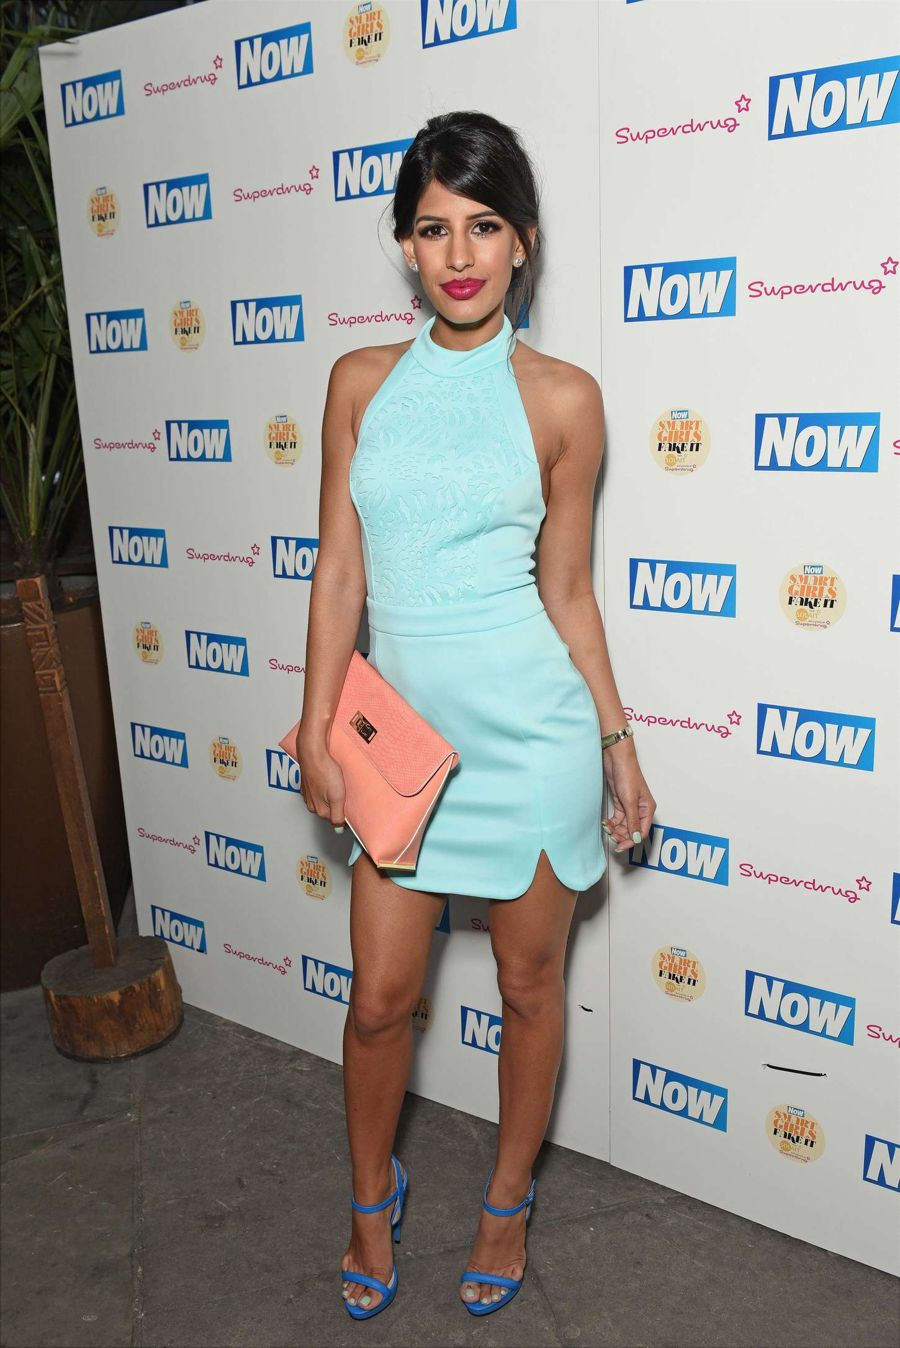 Jasmin Walia - Now Smart Girls Fake It Campaign